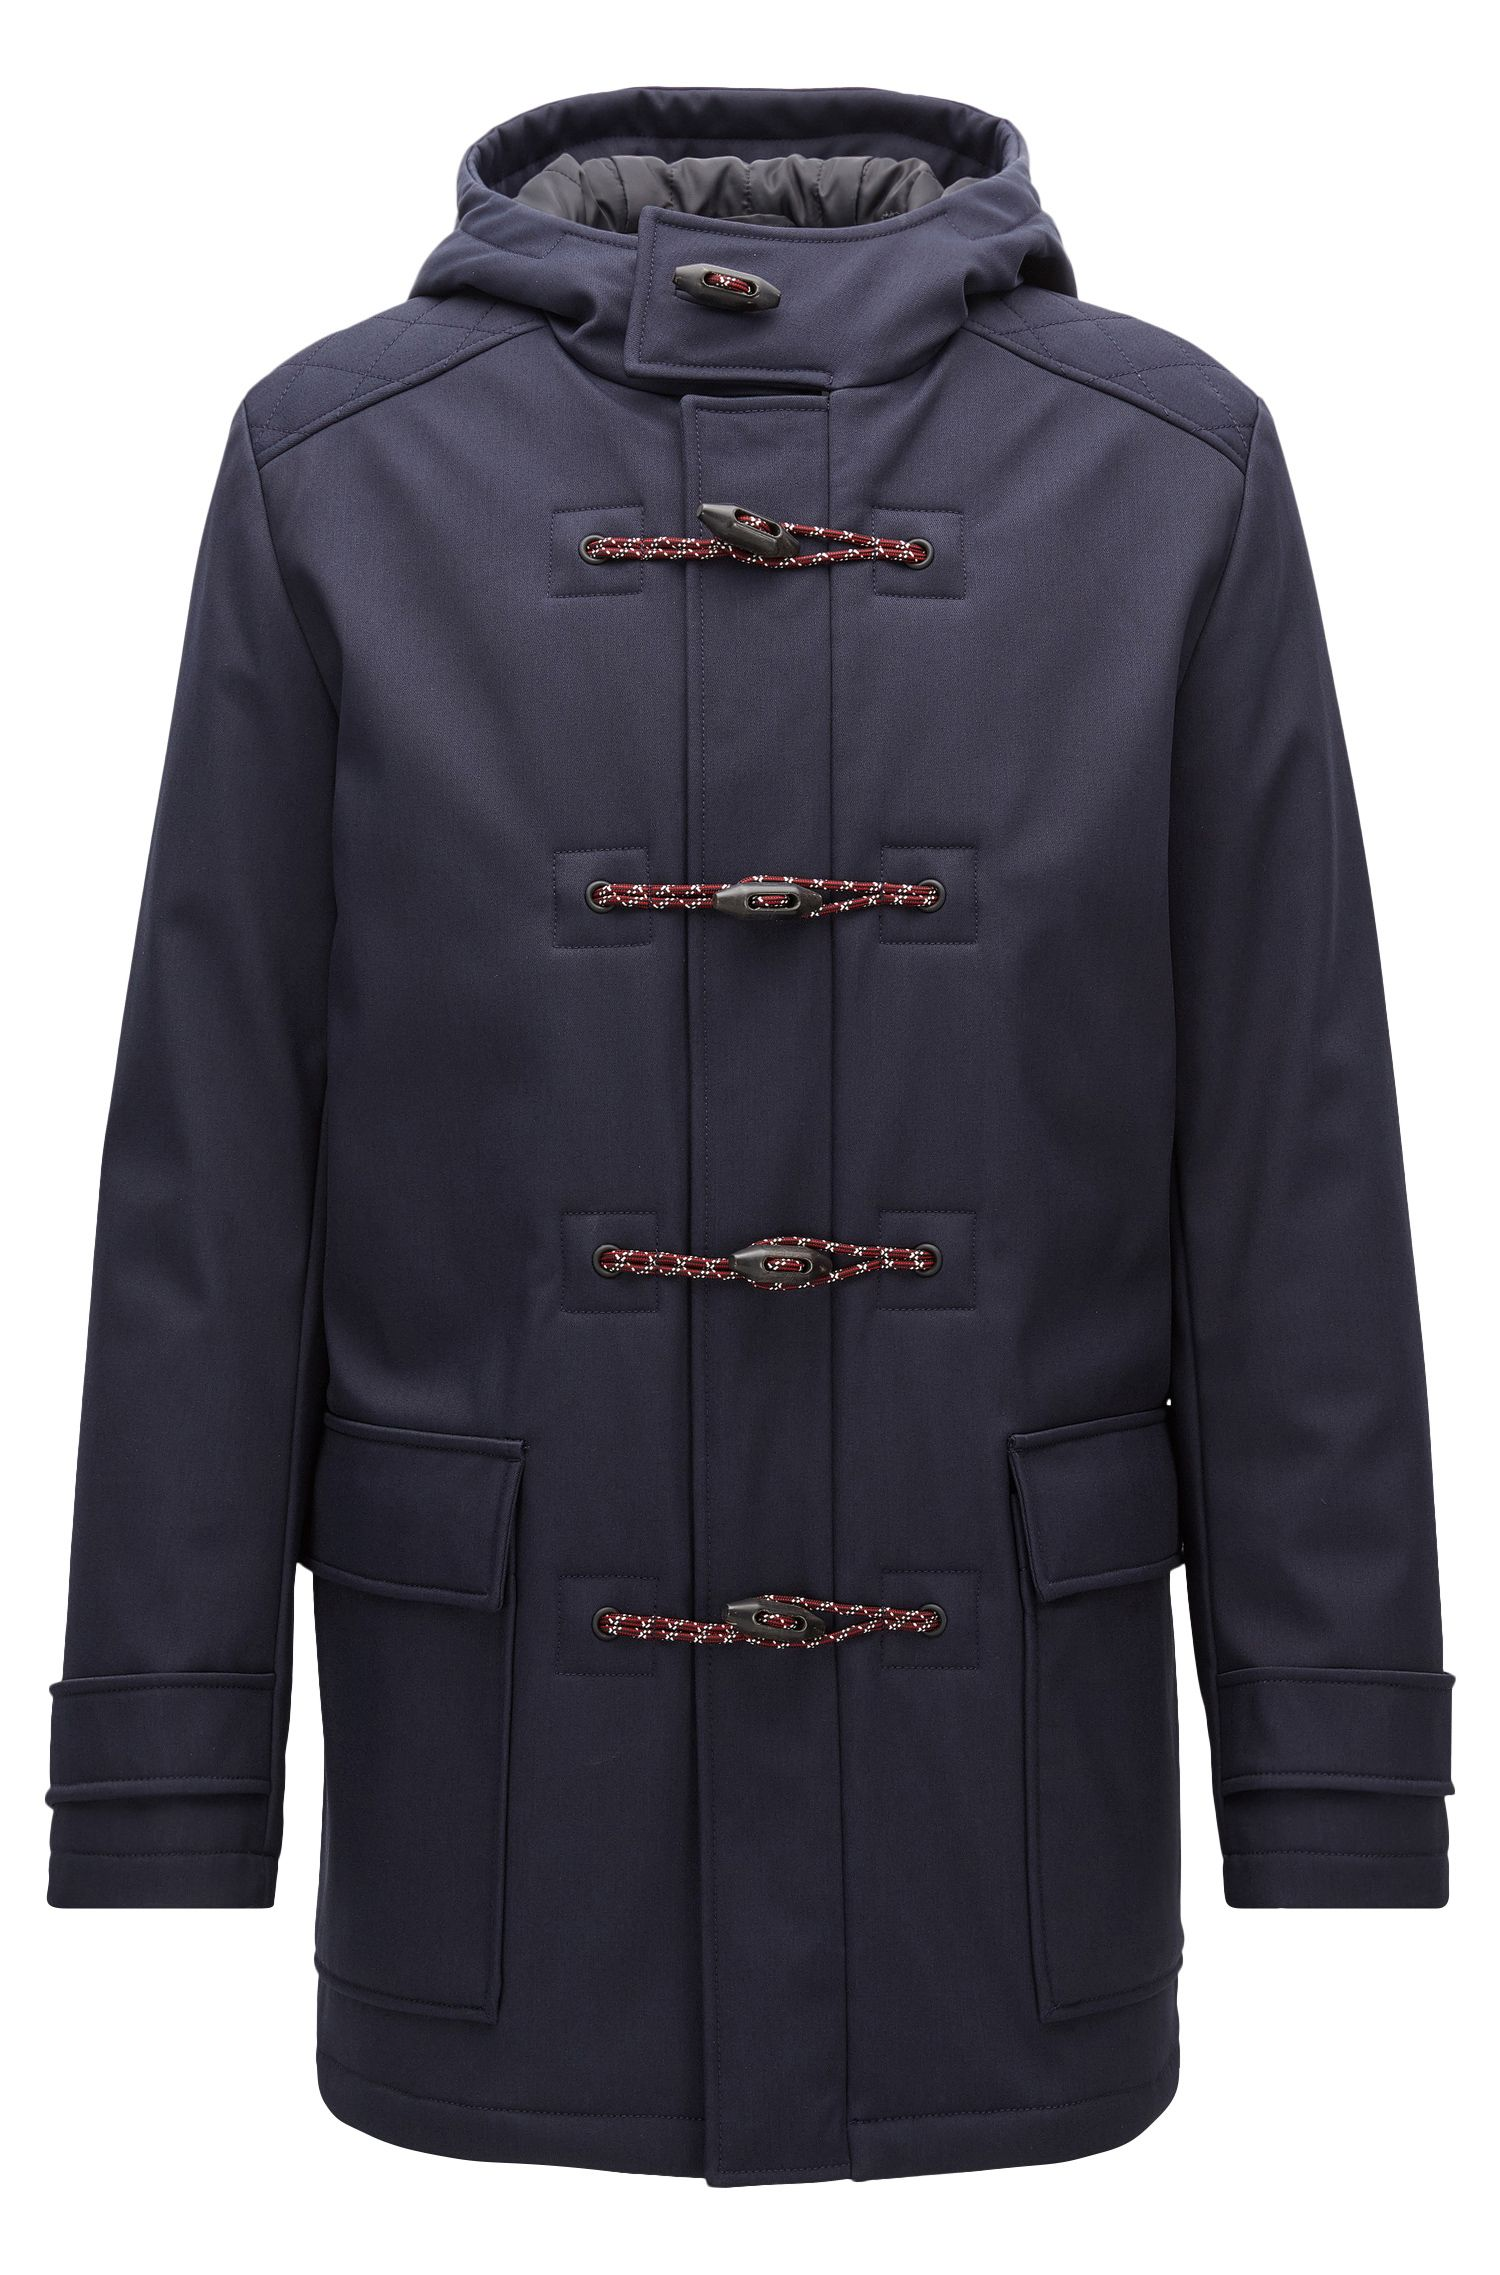 Slim-fit duffle coat in bonded technical fabric